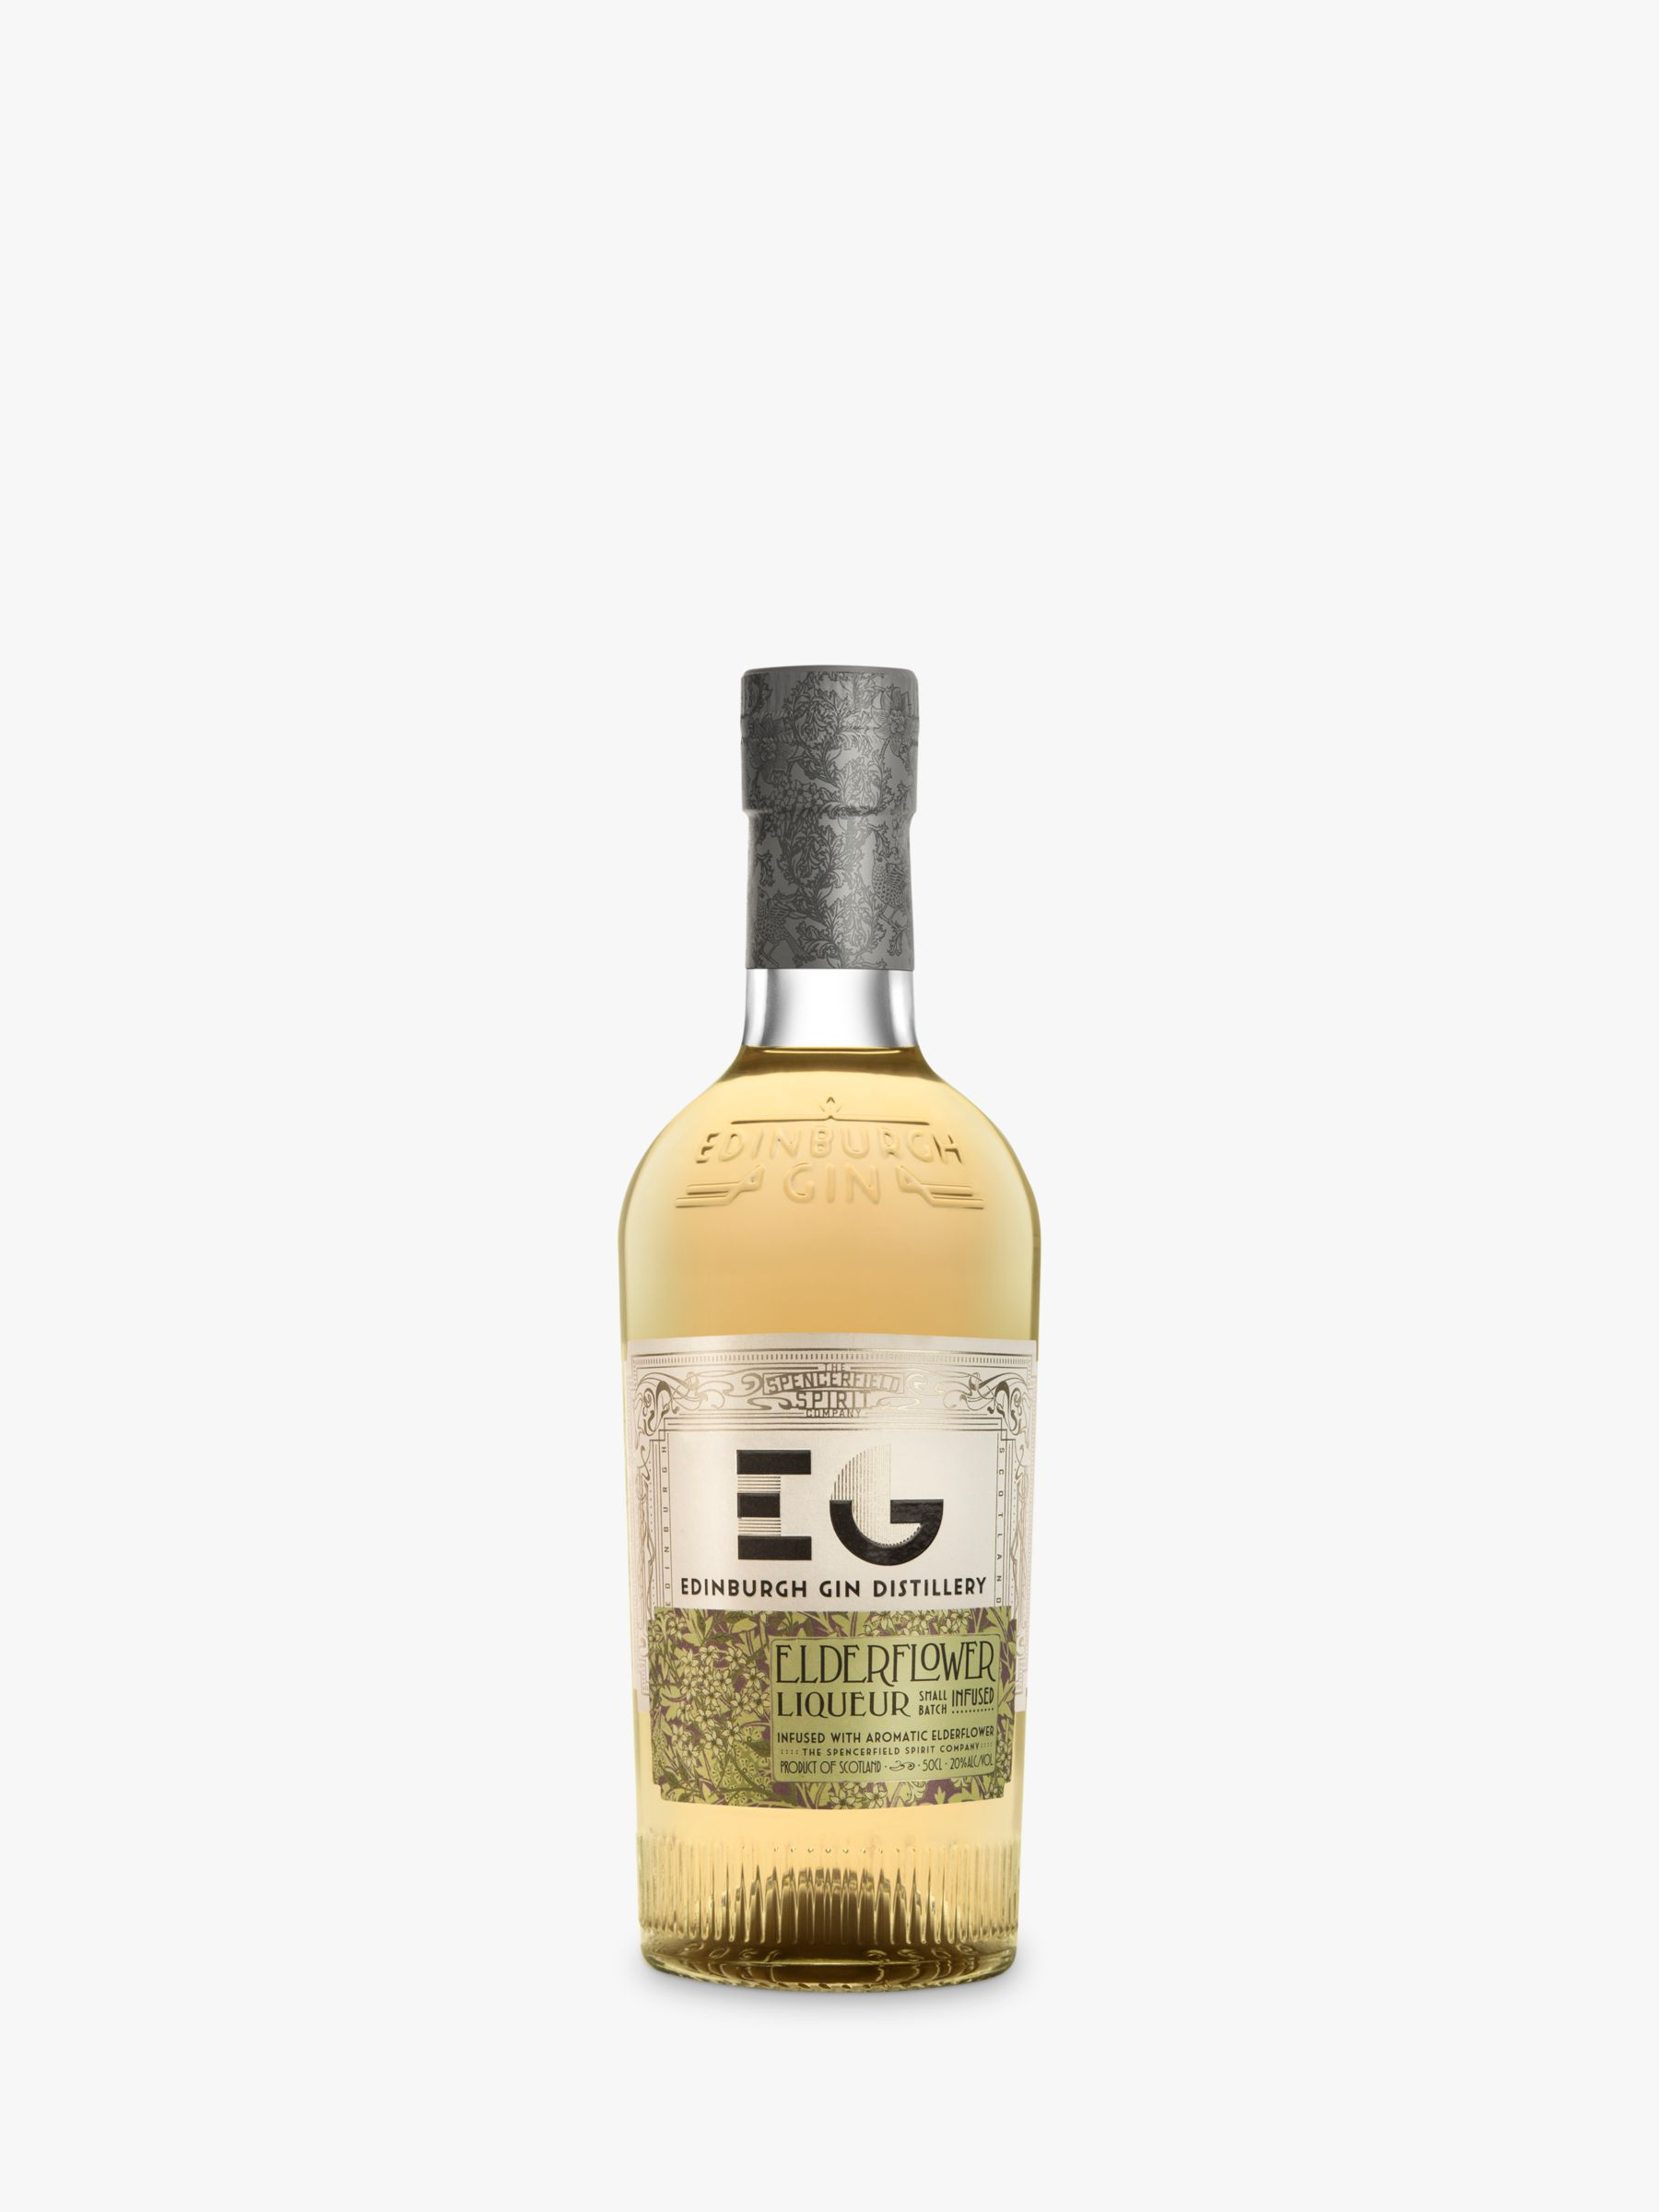 Edinburgh Gin Edinburgh Gin Elderflower Liqueur, 50cl